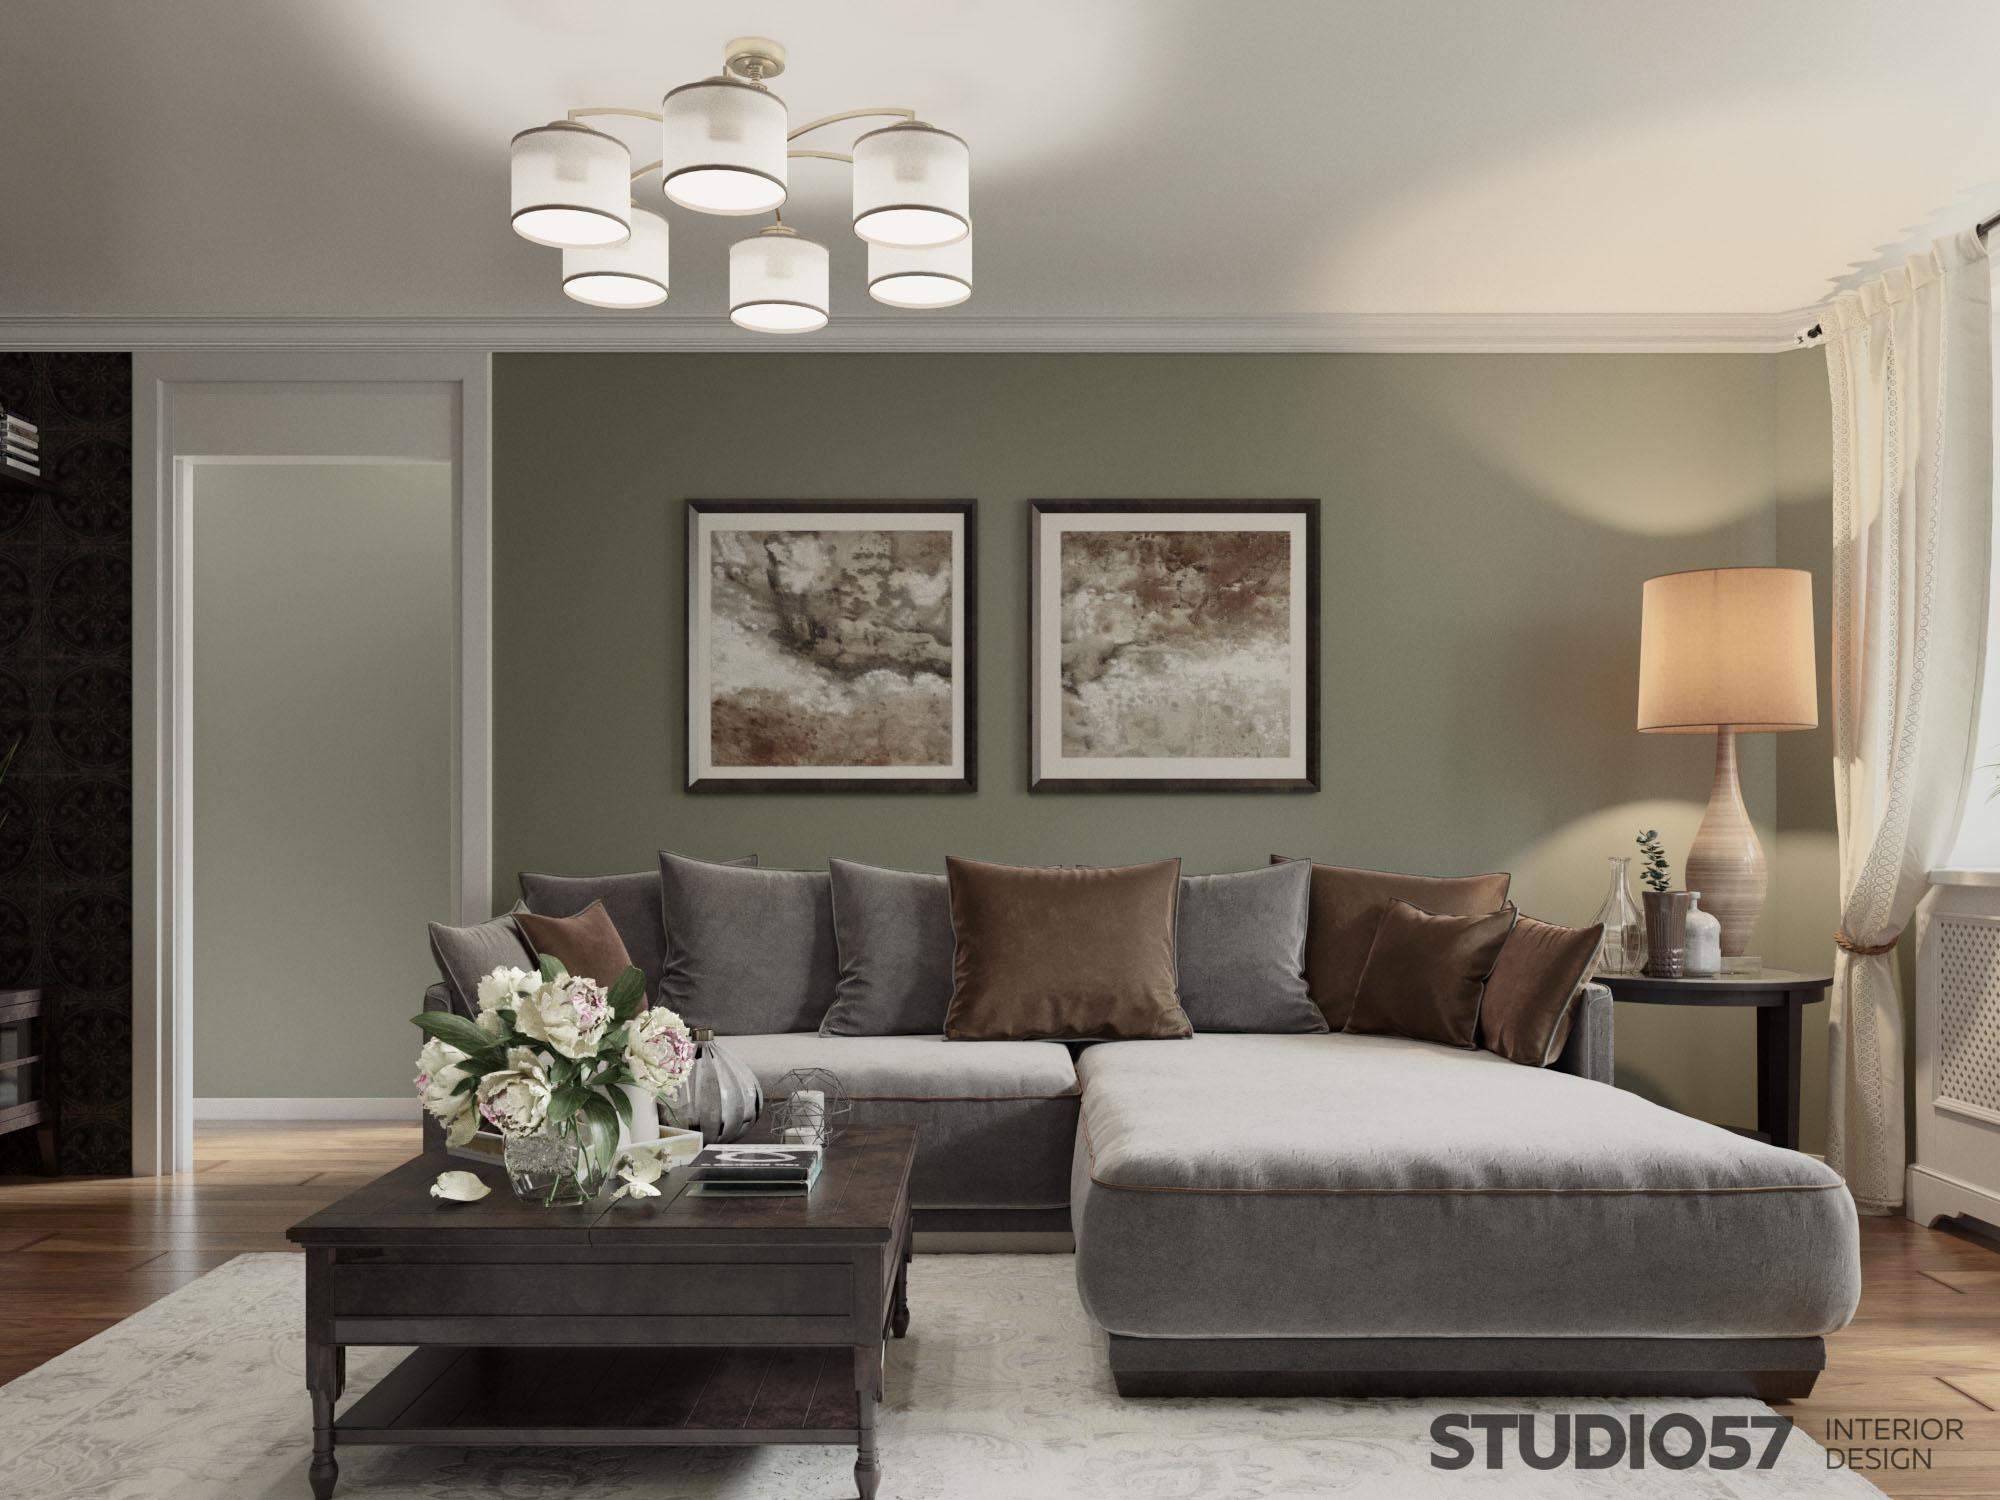 Style Neoclassic in the interior of the apartment photo design